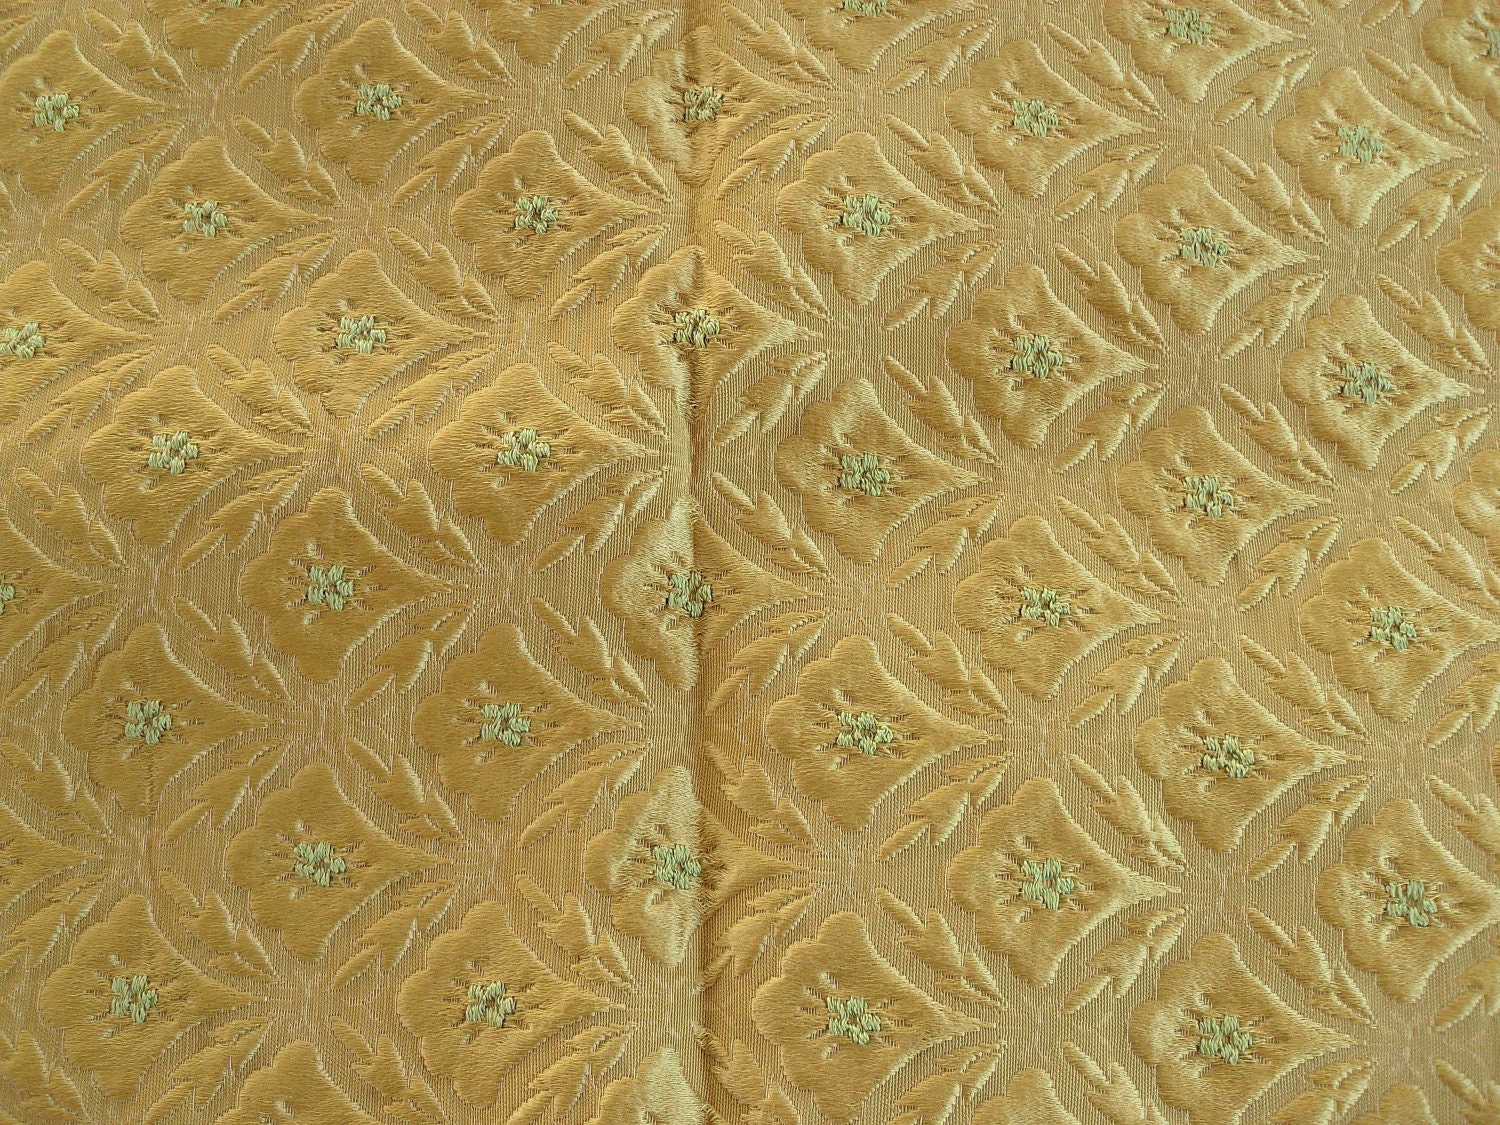 Vintage Upholstery Fabric Gold Raised Design Damask 1 5 Yards